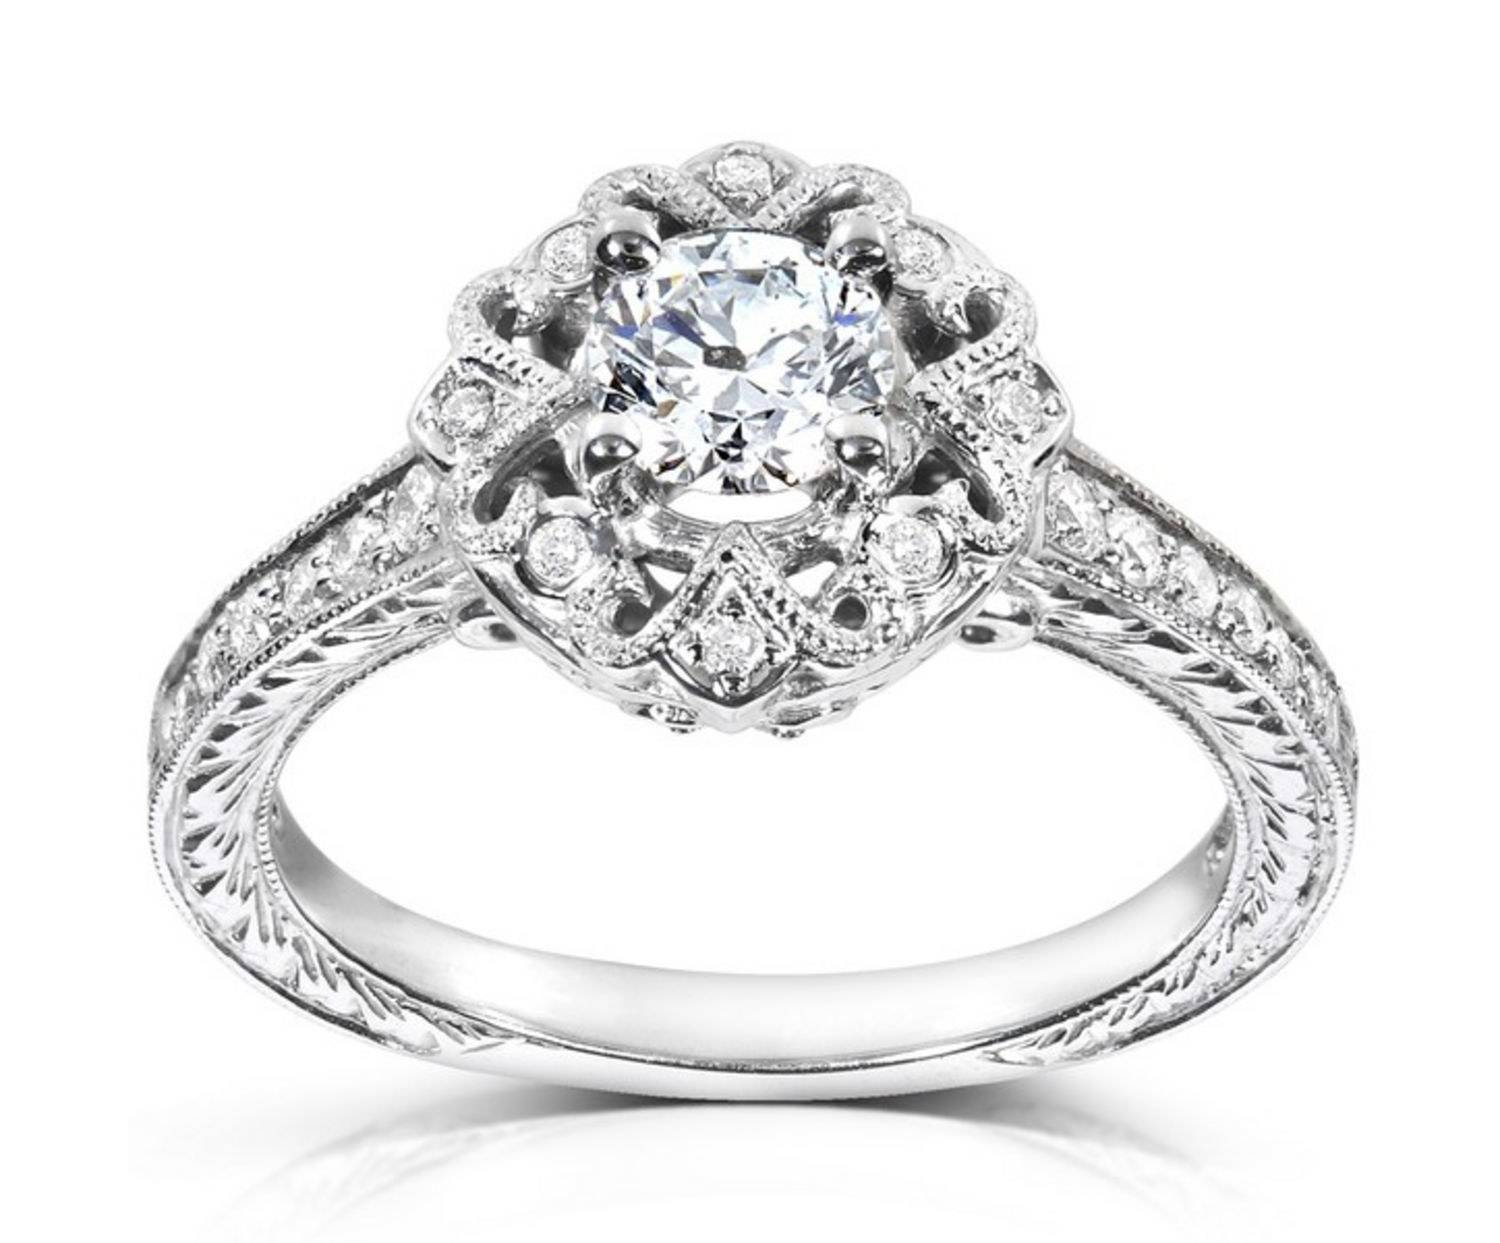 Affordable Engagement Rings Under $1,000 | Glamour For Houston Engagement Rings (View 1 of 15)